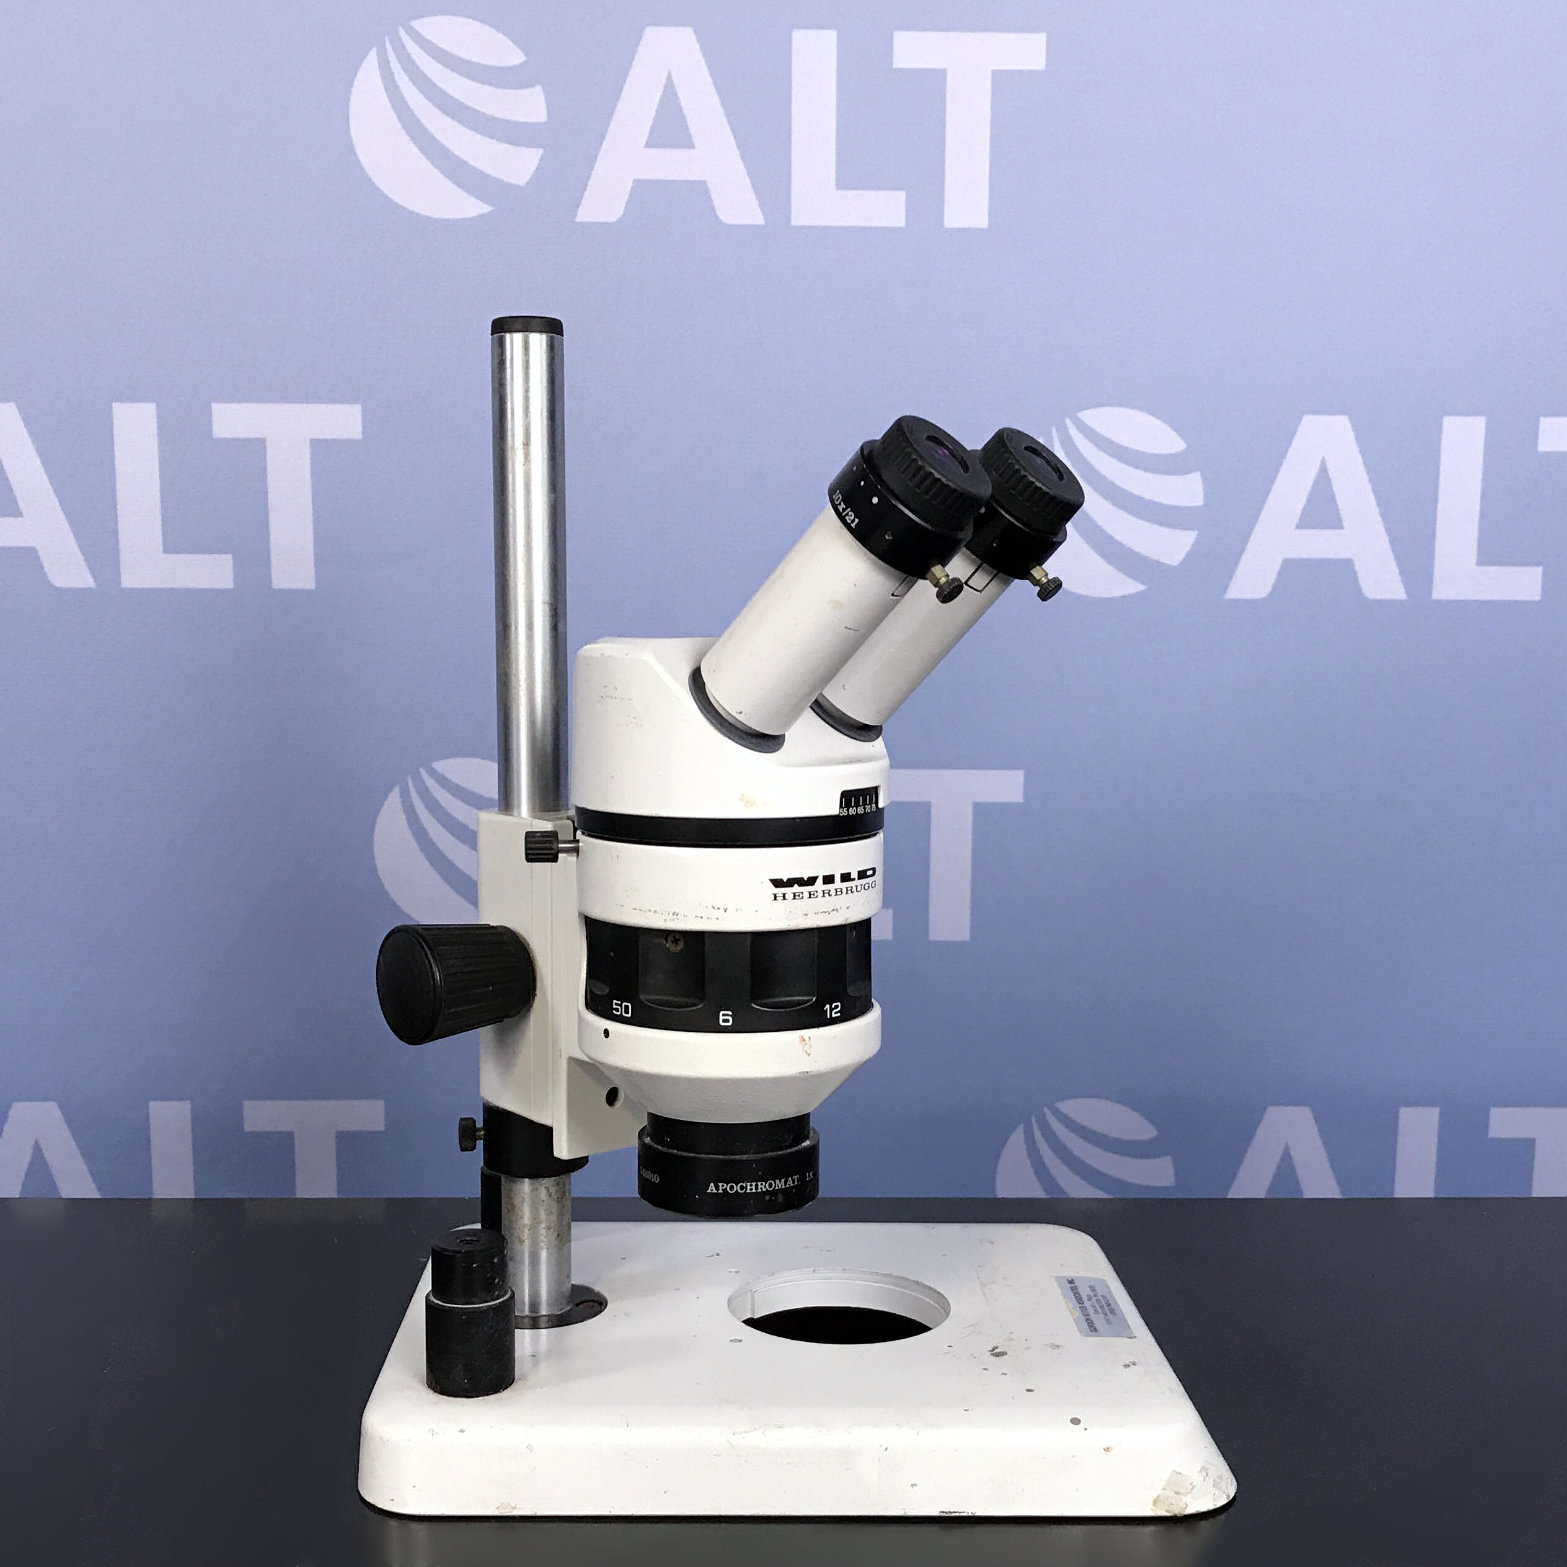 M5A Stereomicroscope  Name